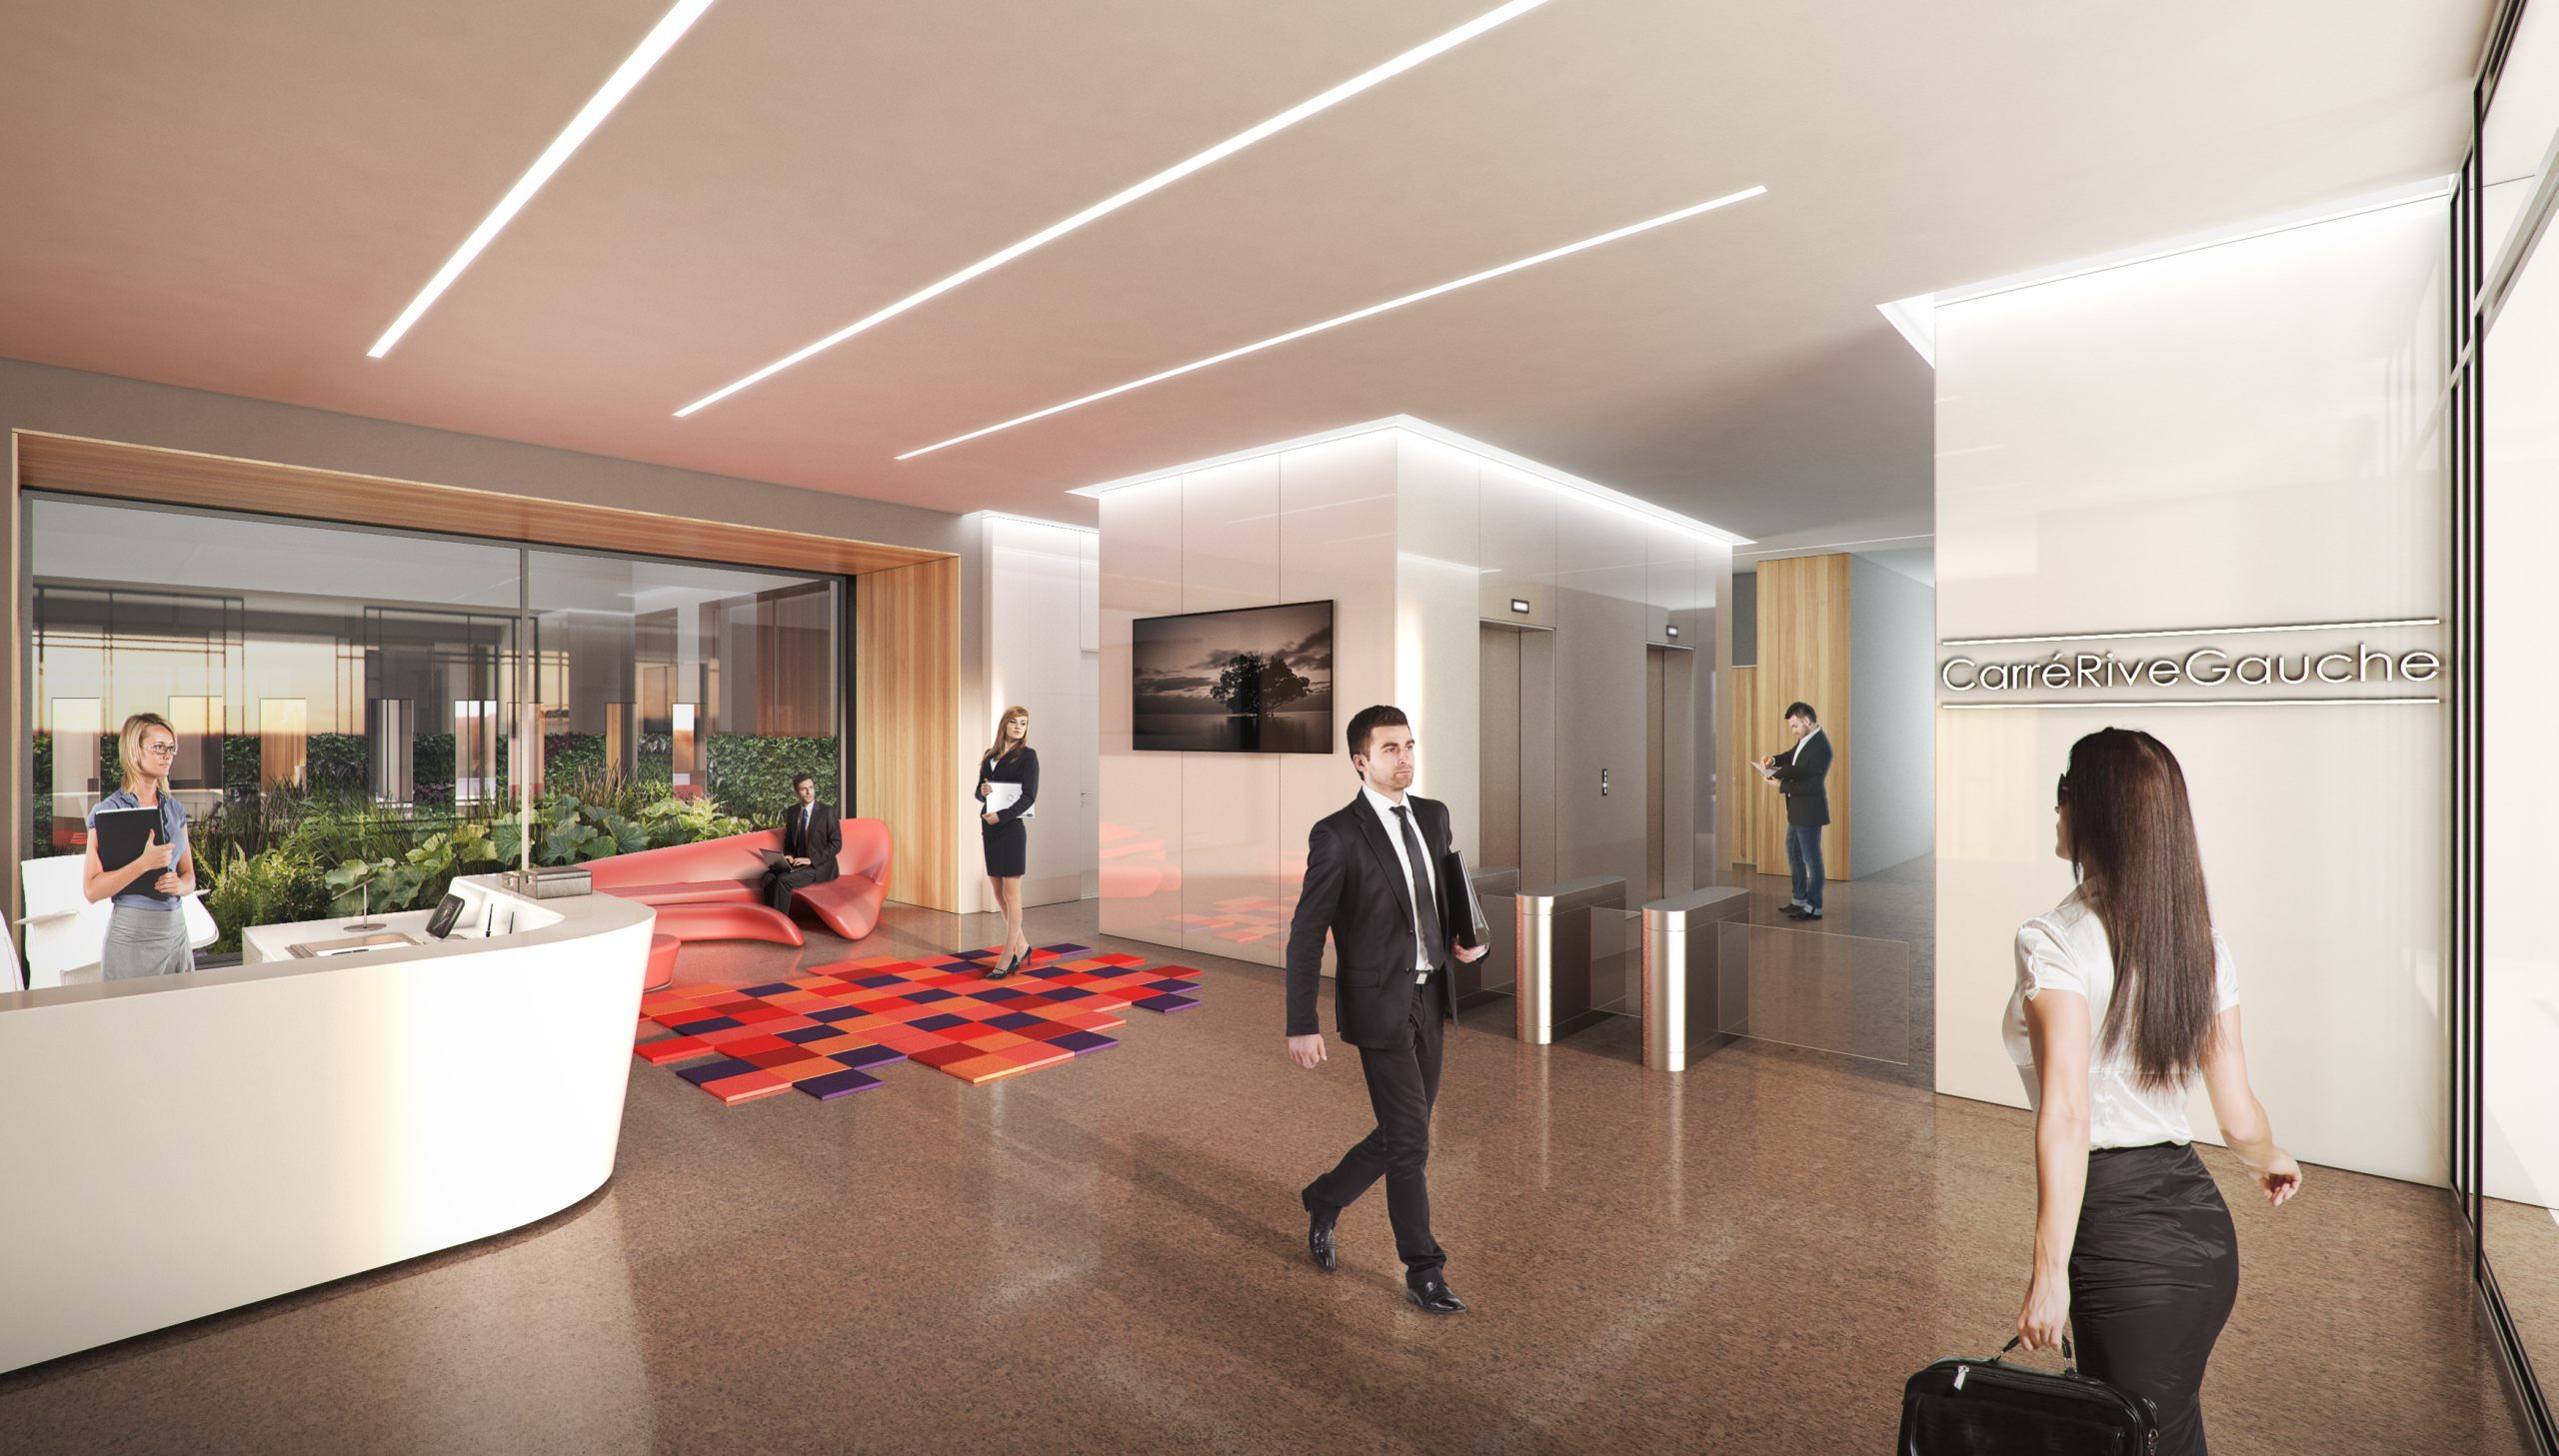 Commercial office spaces for the new development in France.